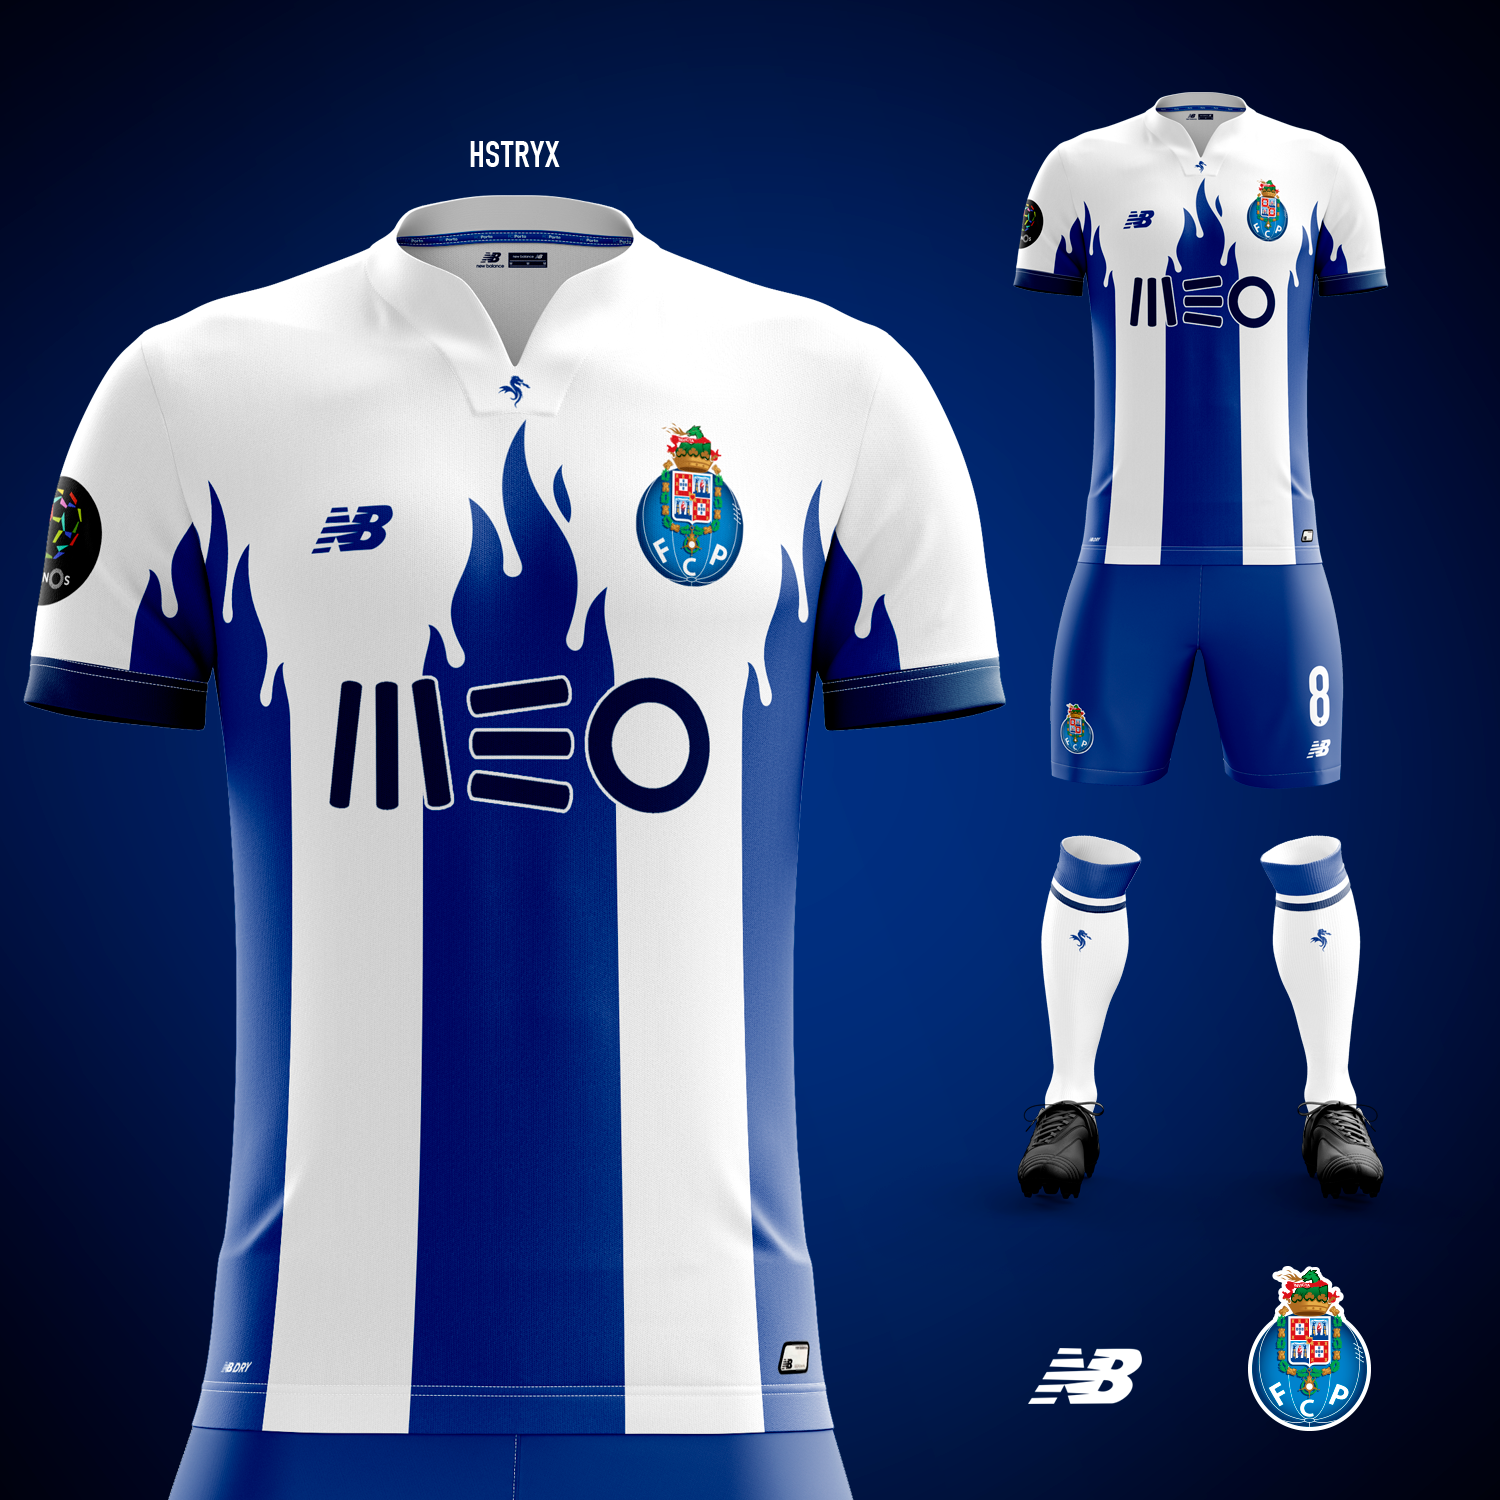 official photos 800ea 31971 Pin by Cristian Badilla Ibarra on uniformes | Soccer shirts ...